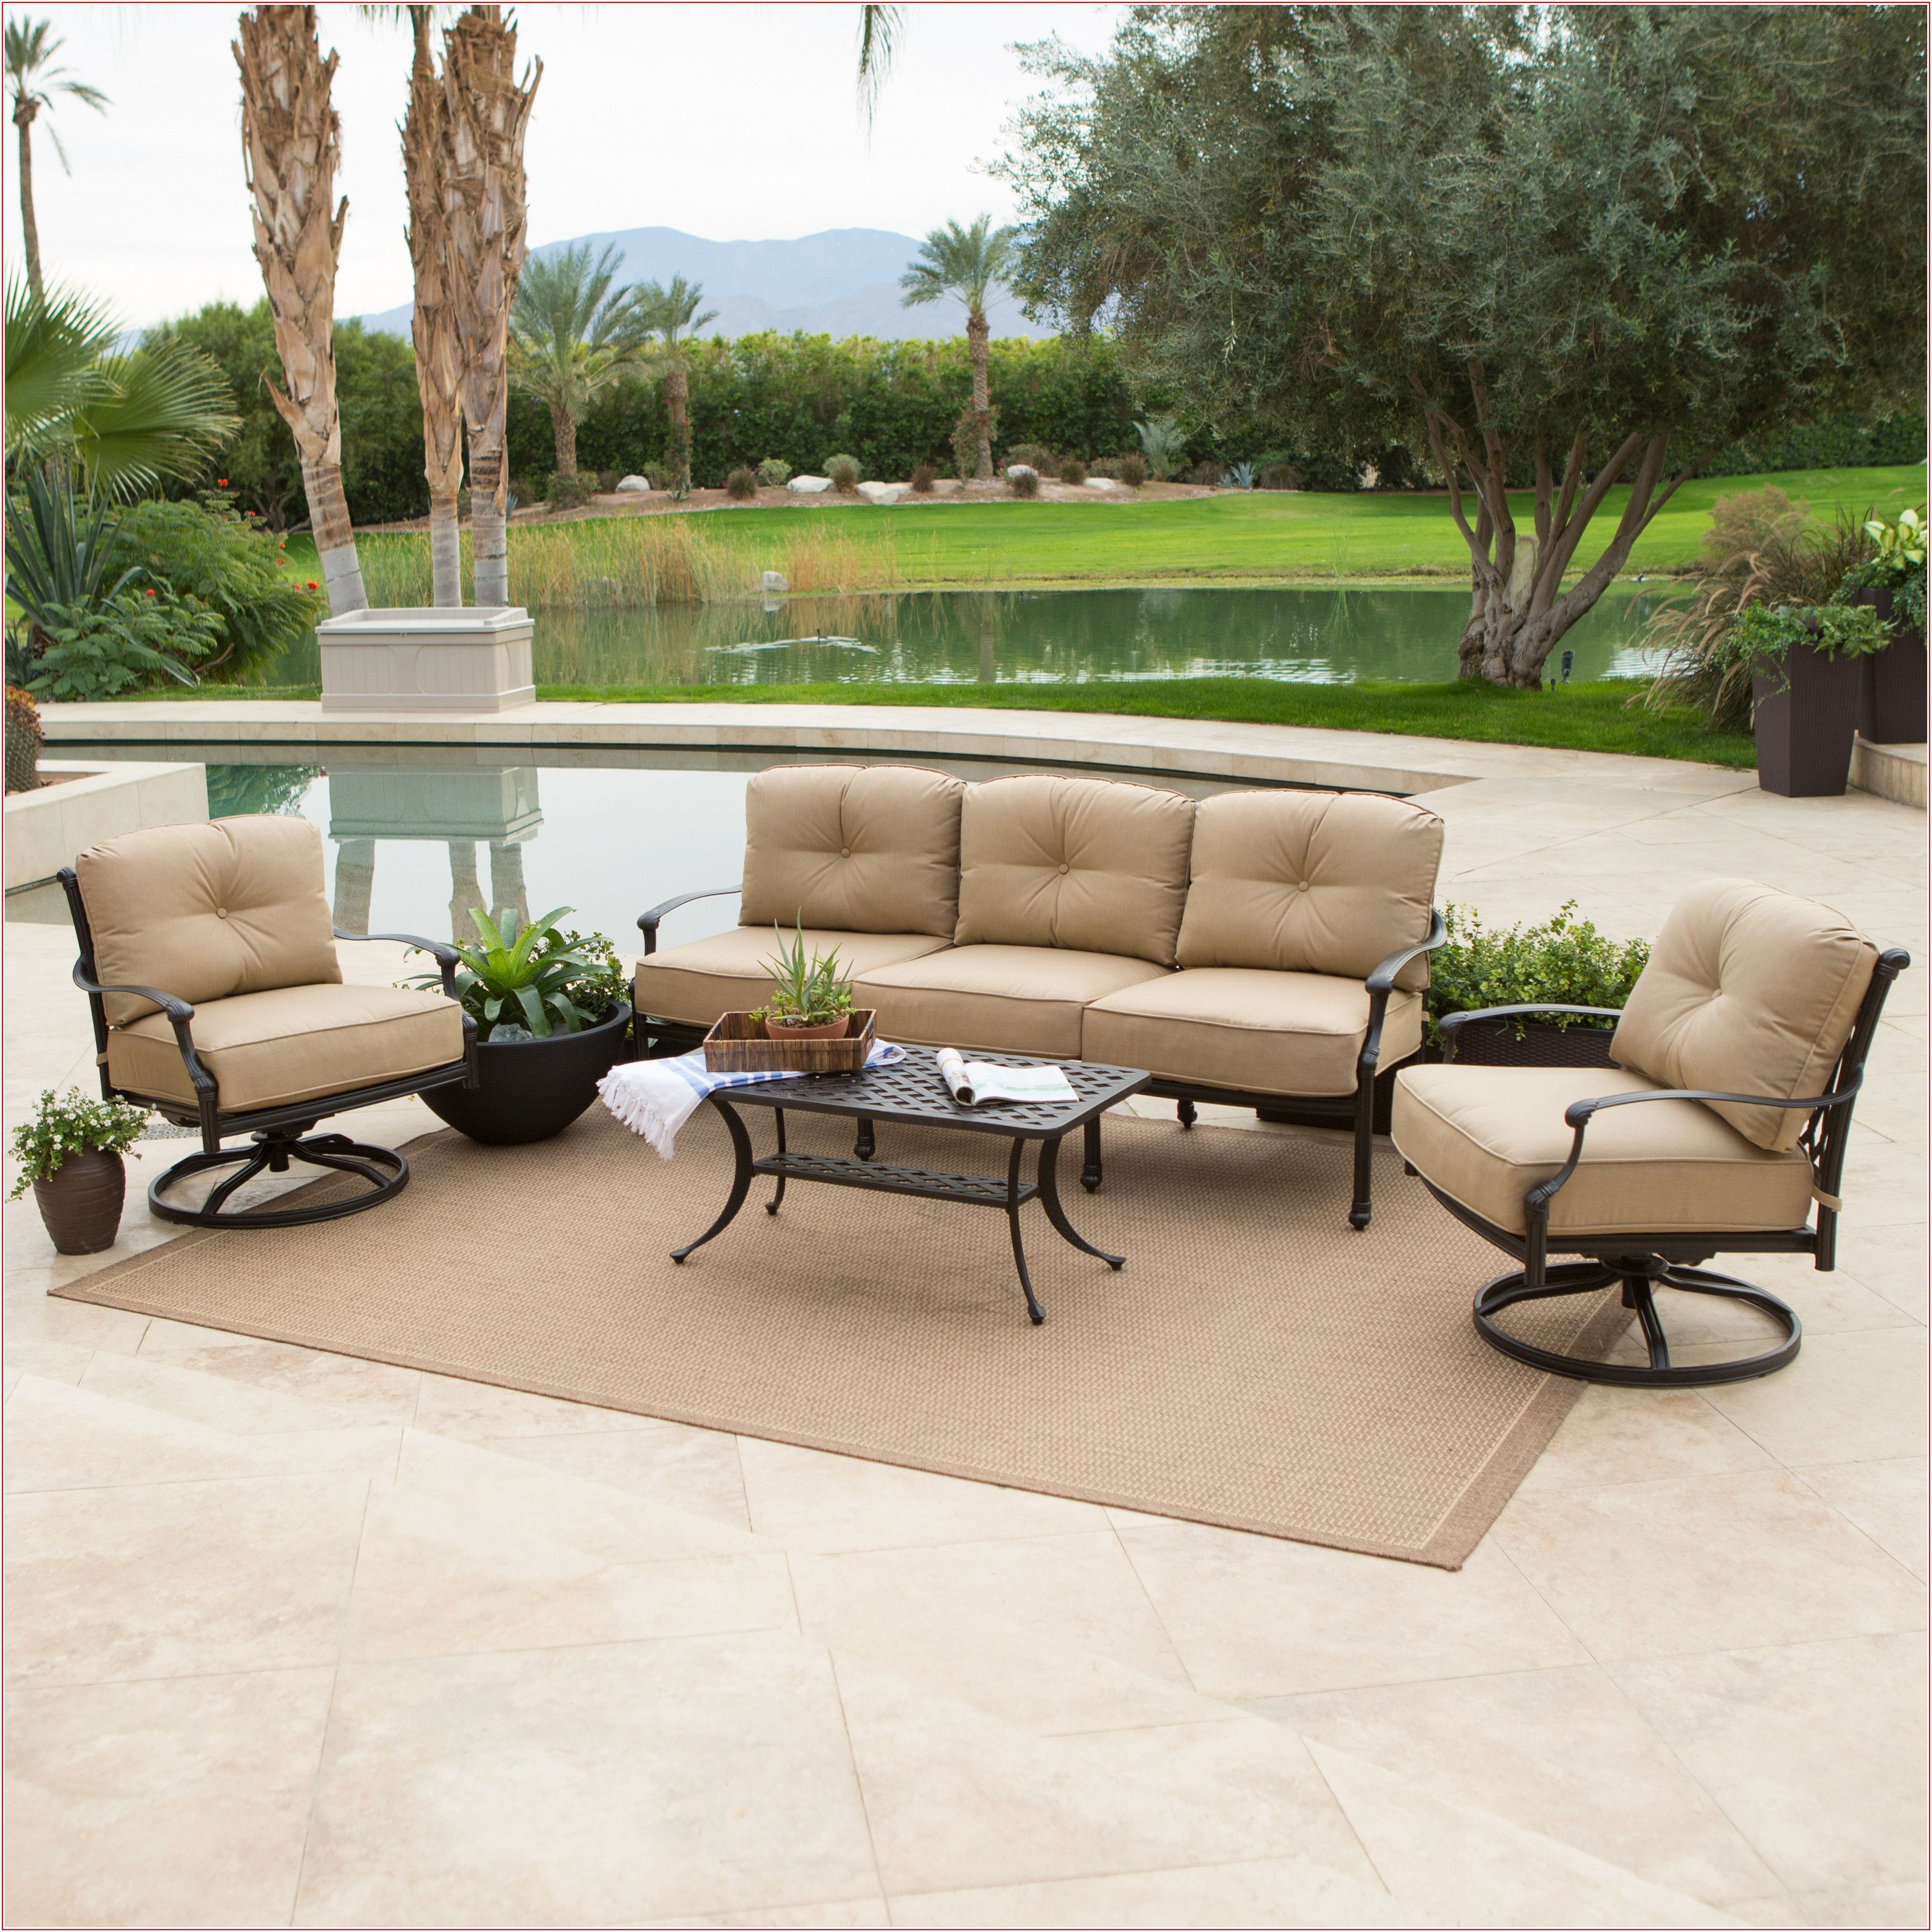 Aluminum Patio Furniture With Sunbrella Cushions